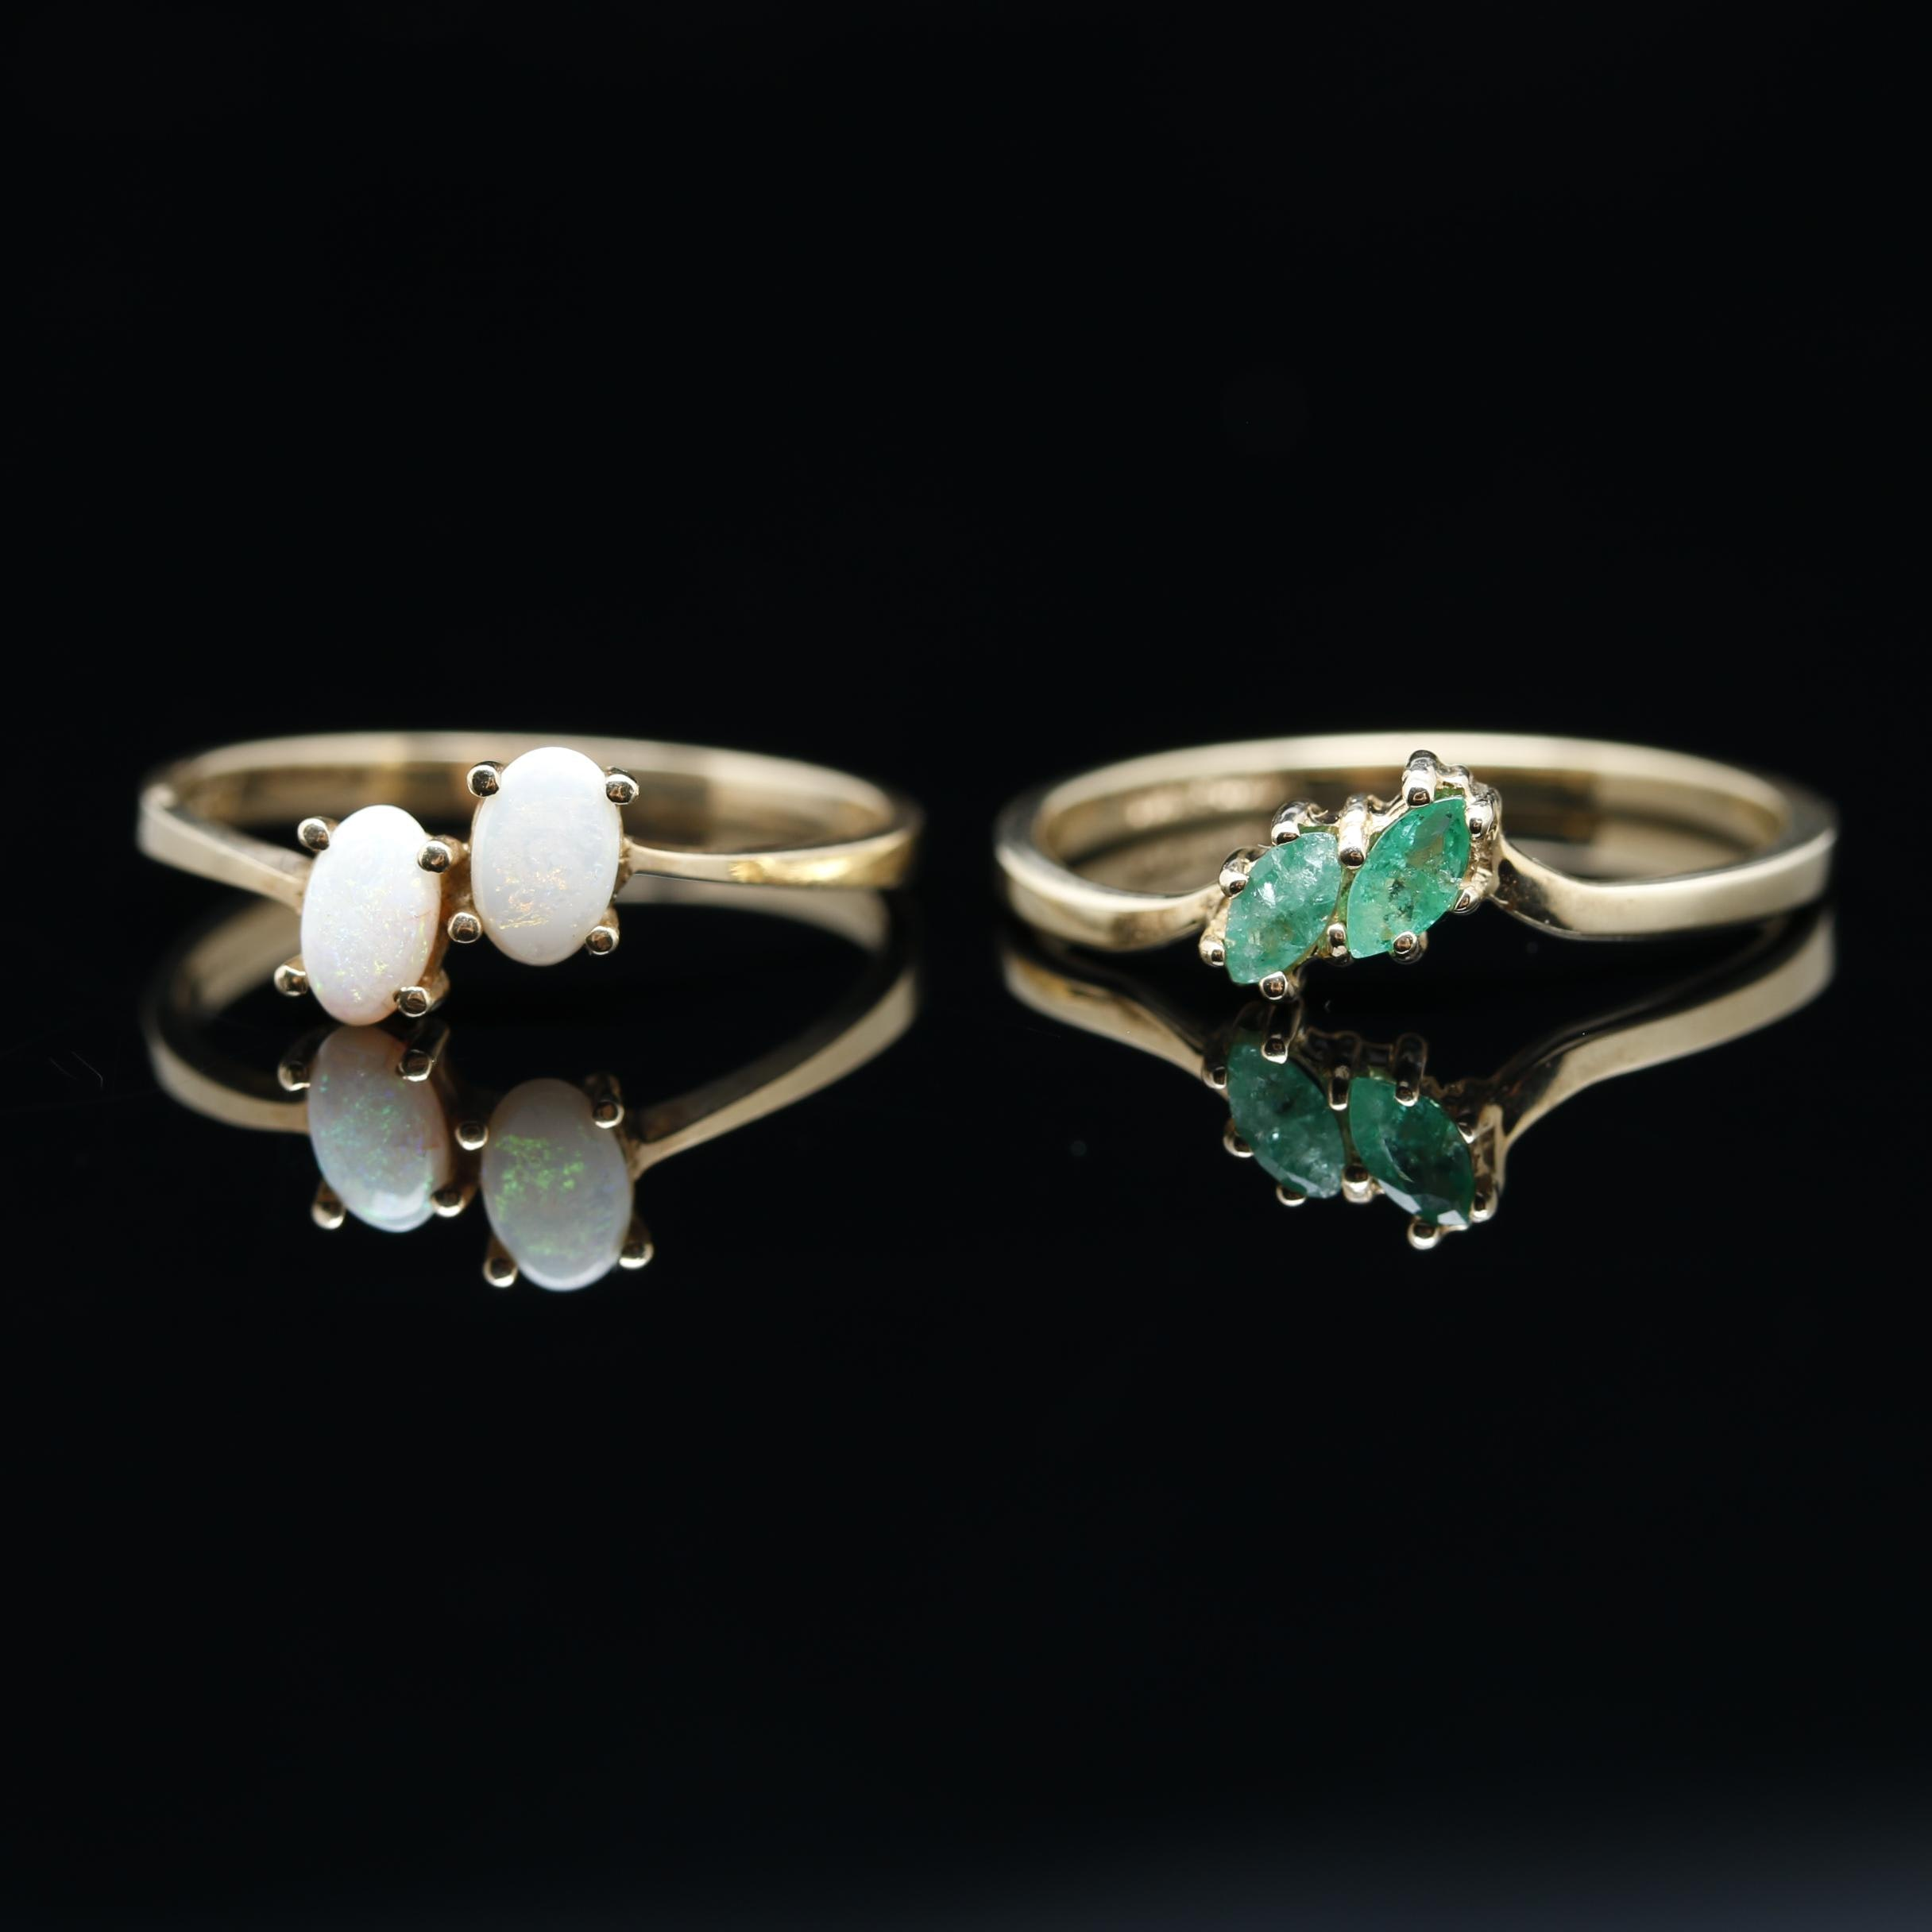 10K Yellow Gold Opal and Emerald Ring Selection